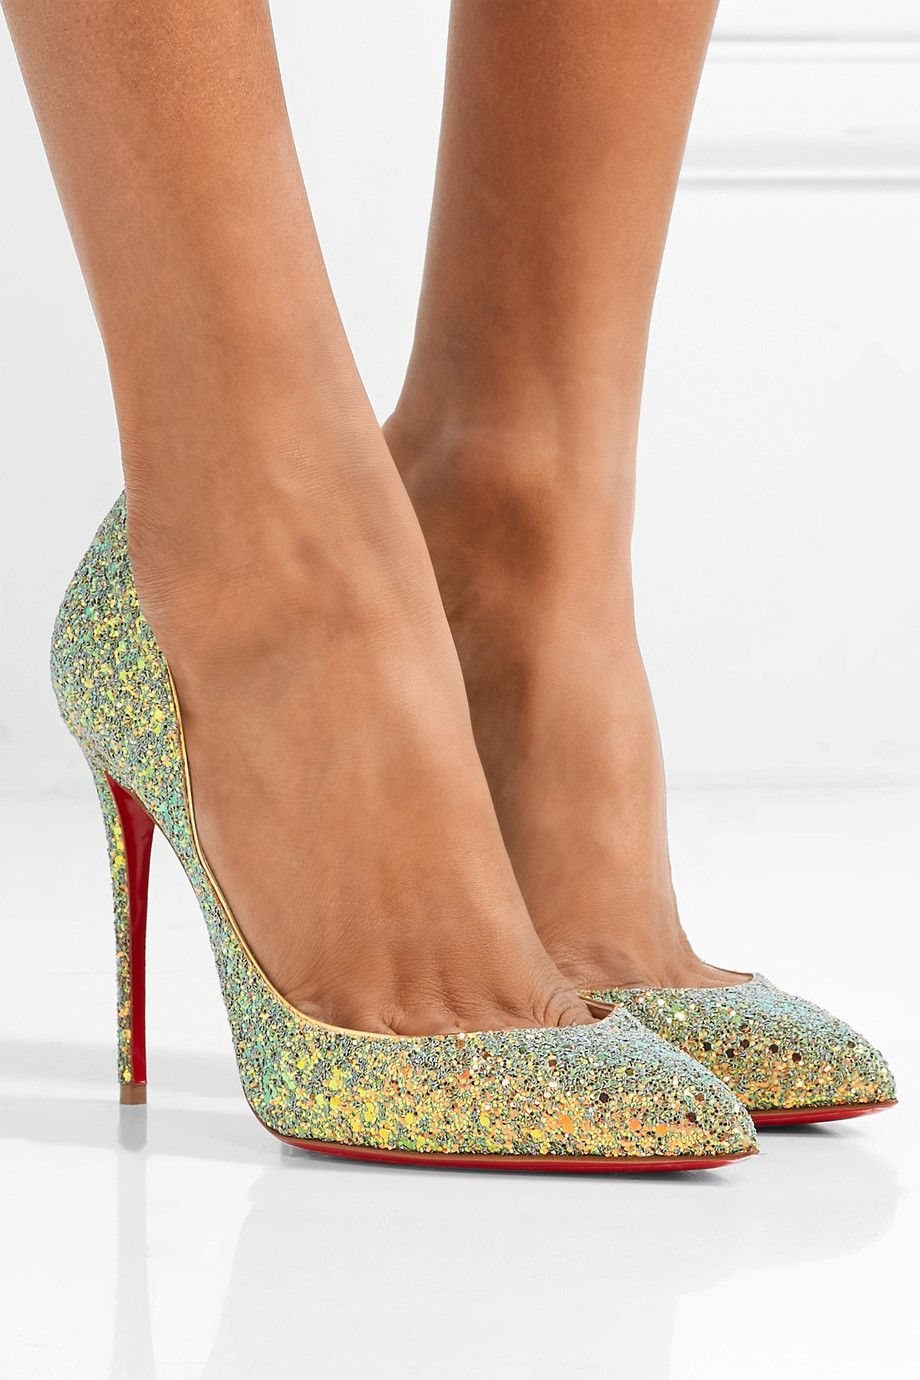 651ea9f9d7a Christian Louboutin - Pigalle Follies Dragonfly 100 glittered ...